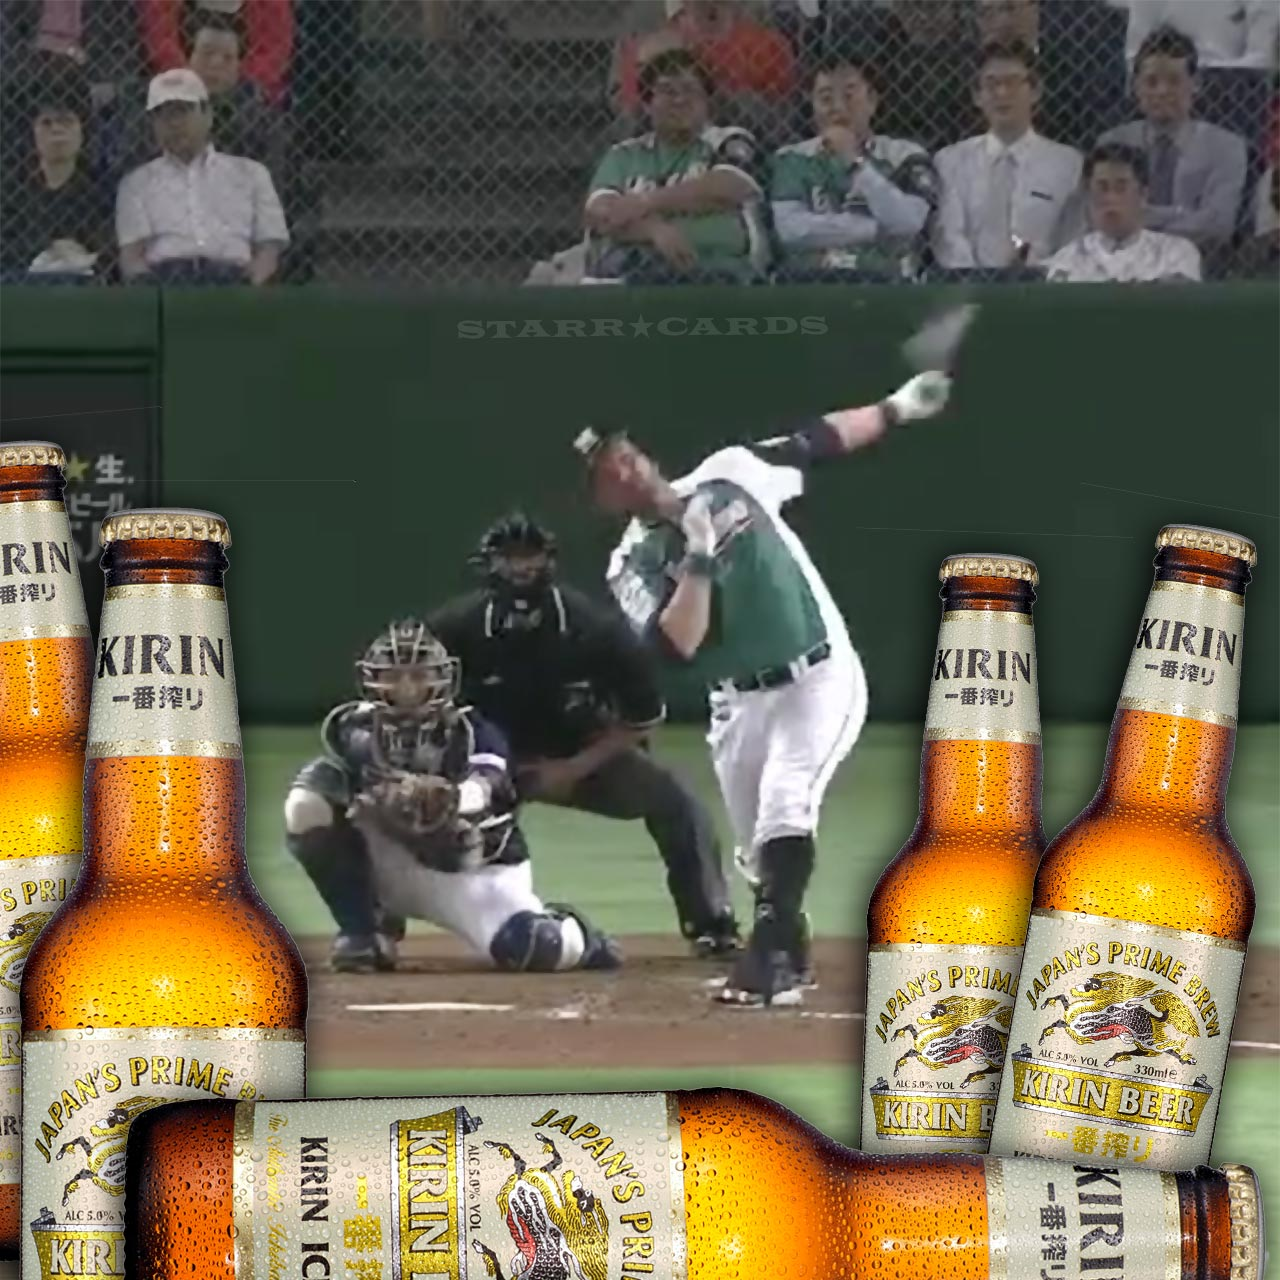 Brandon Laird hits home run off a Kirin Beer sign at Tokyo Dome